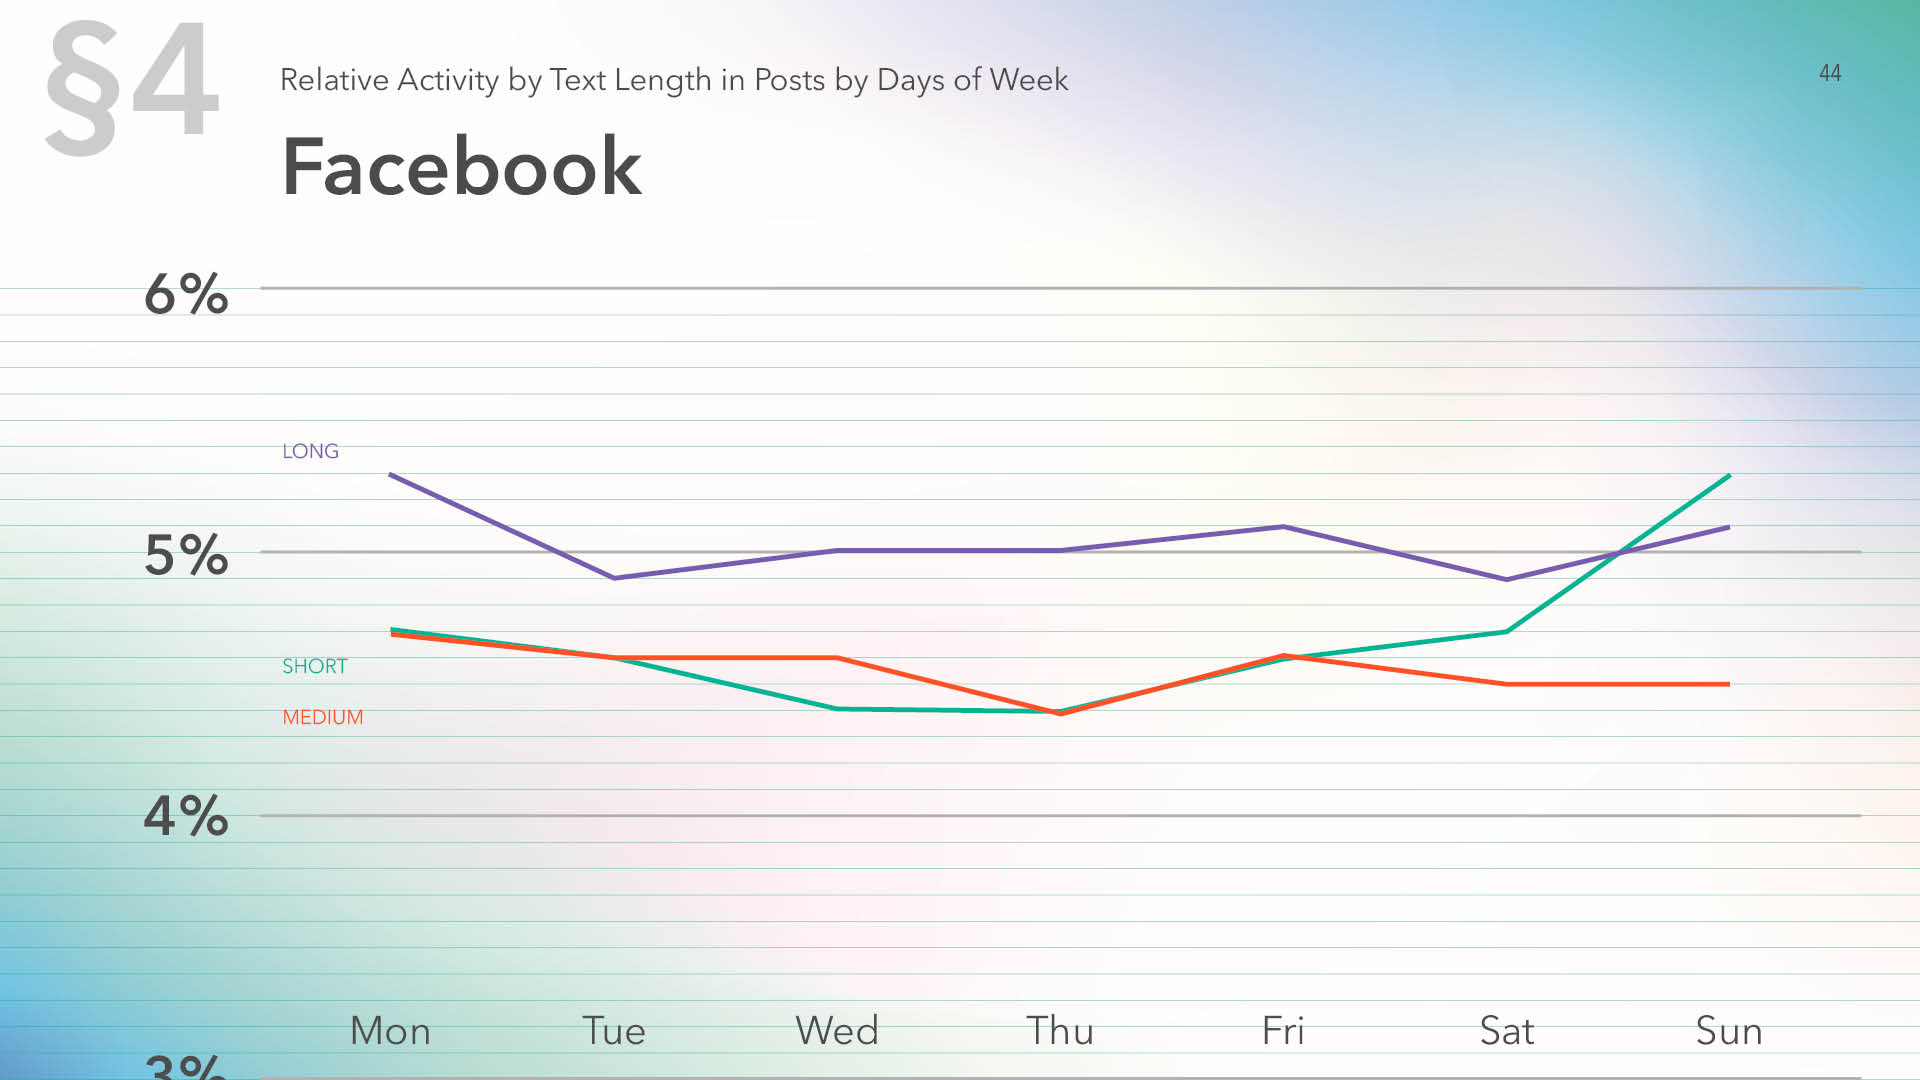 Relative activity on Facebook by text length in posts by days of week for 2019